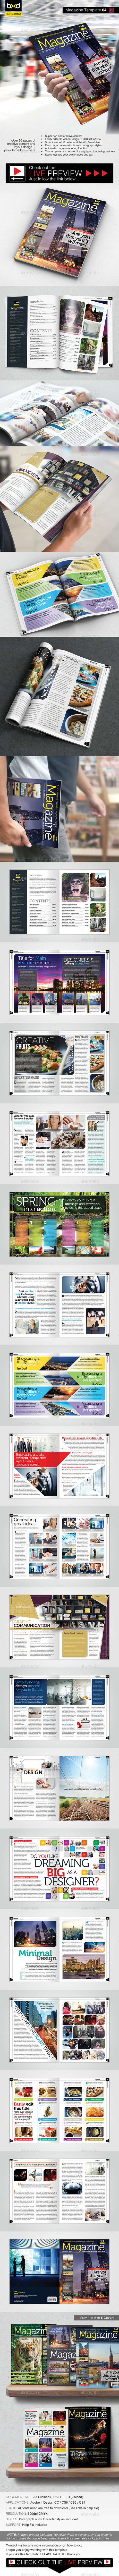 Magazine Template - InDesign 36 Page Layout V1 - Magazines Print Templates